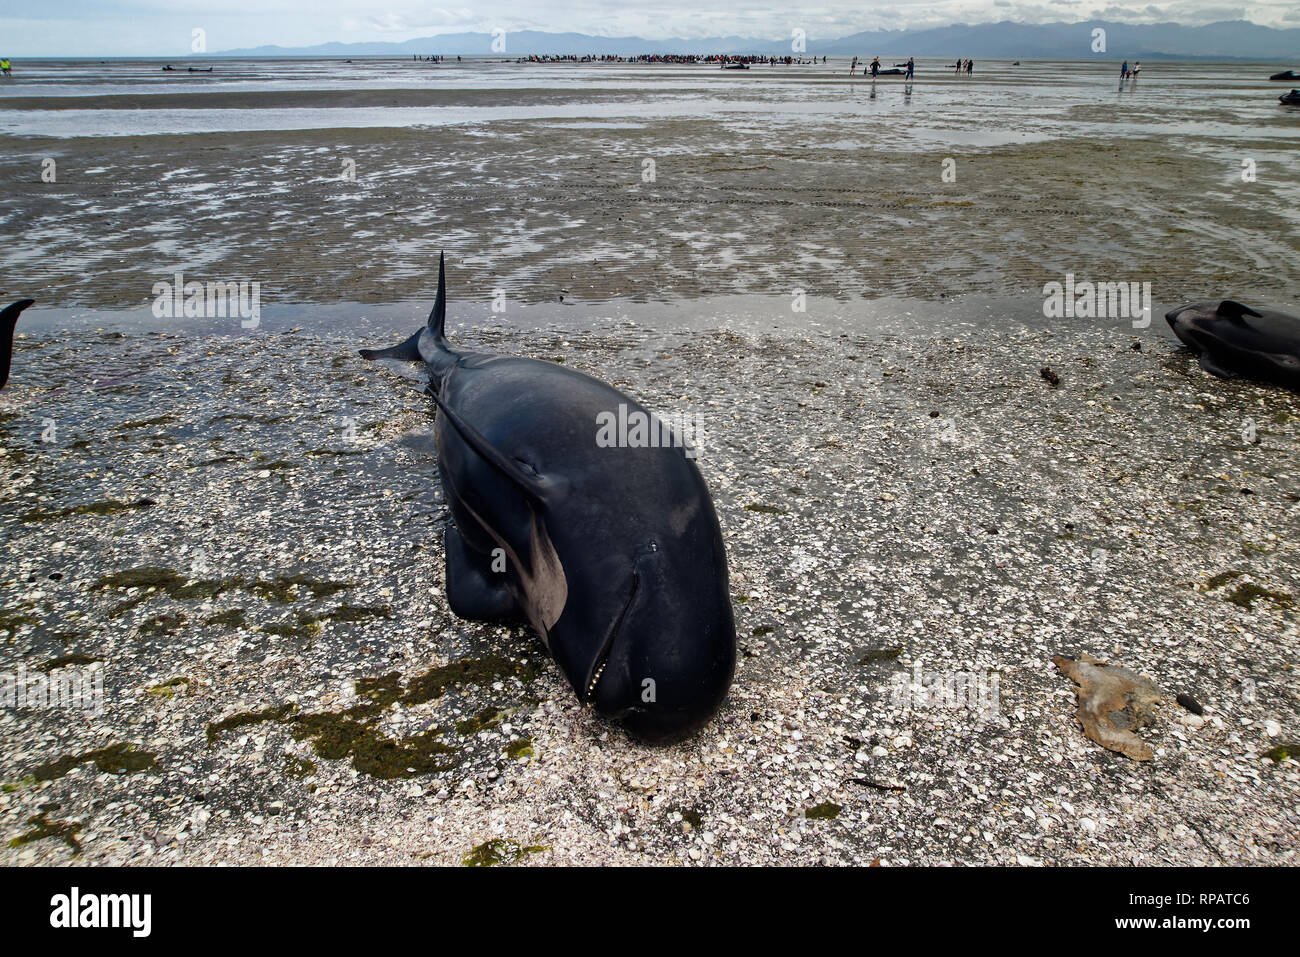 A dead pilot whale in the foreground, groups of people are still trying to keep whales from restranding in the background - Stock Image